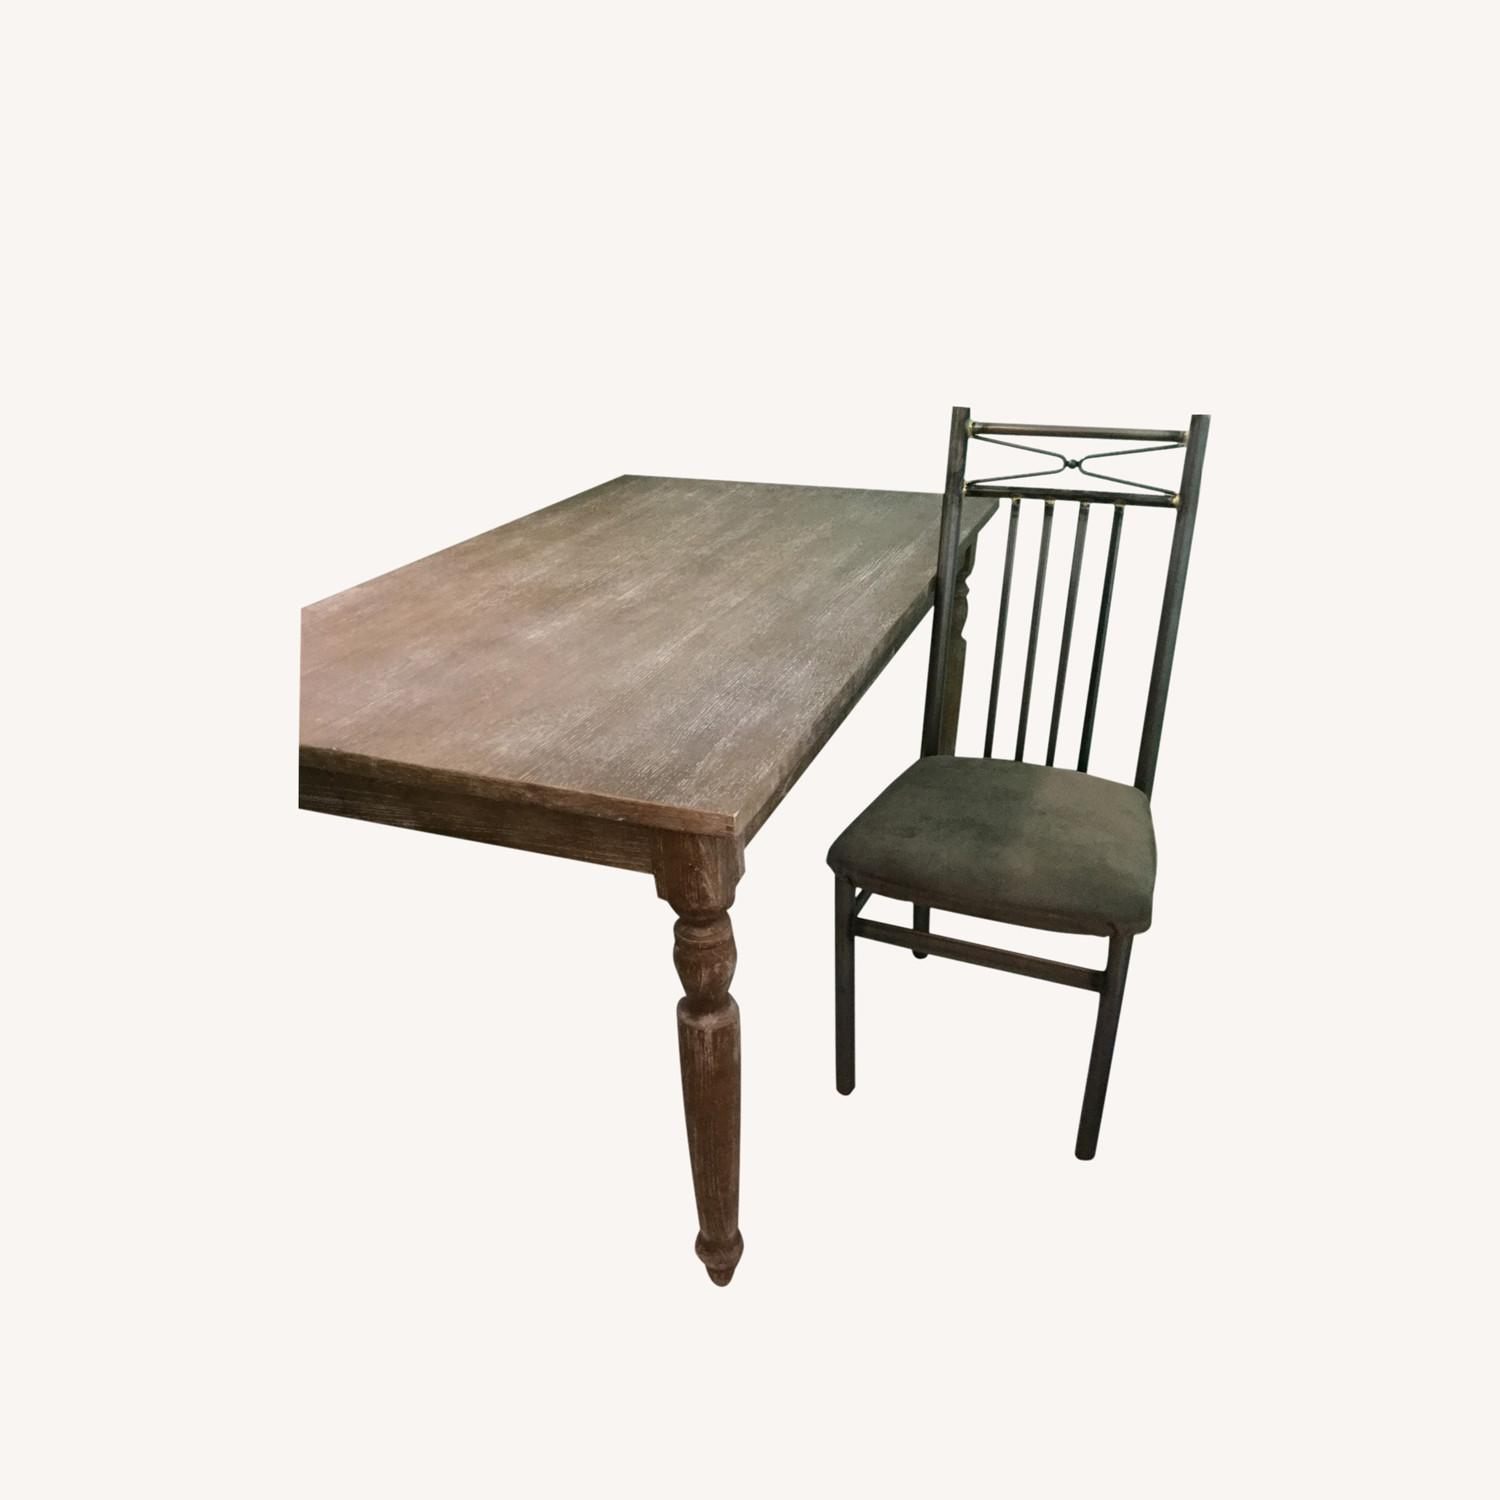 Stratford Dining Table with Chairs - image-0